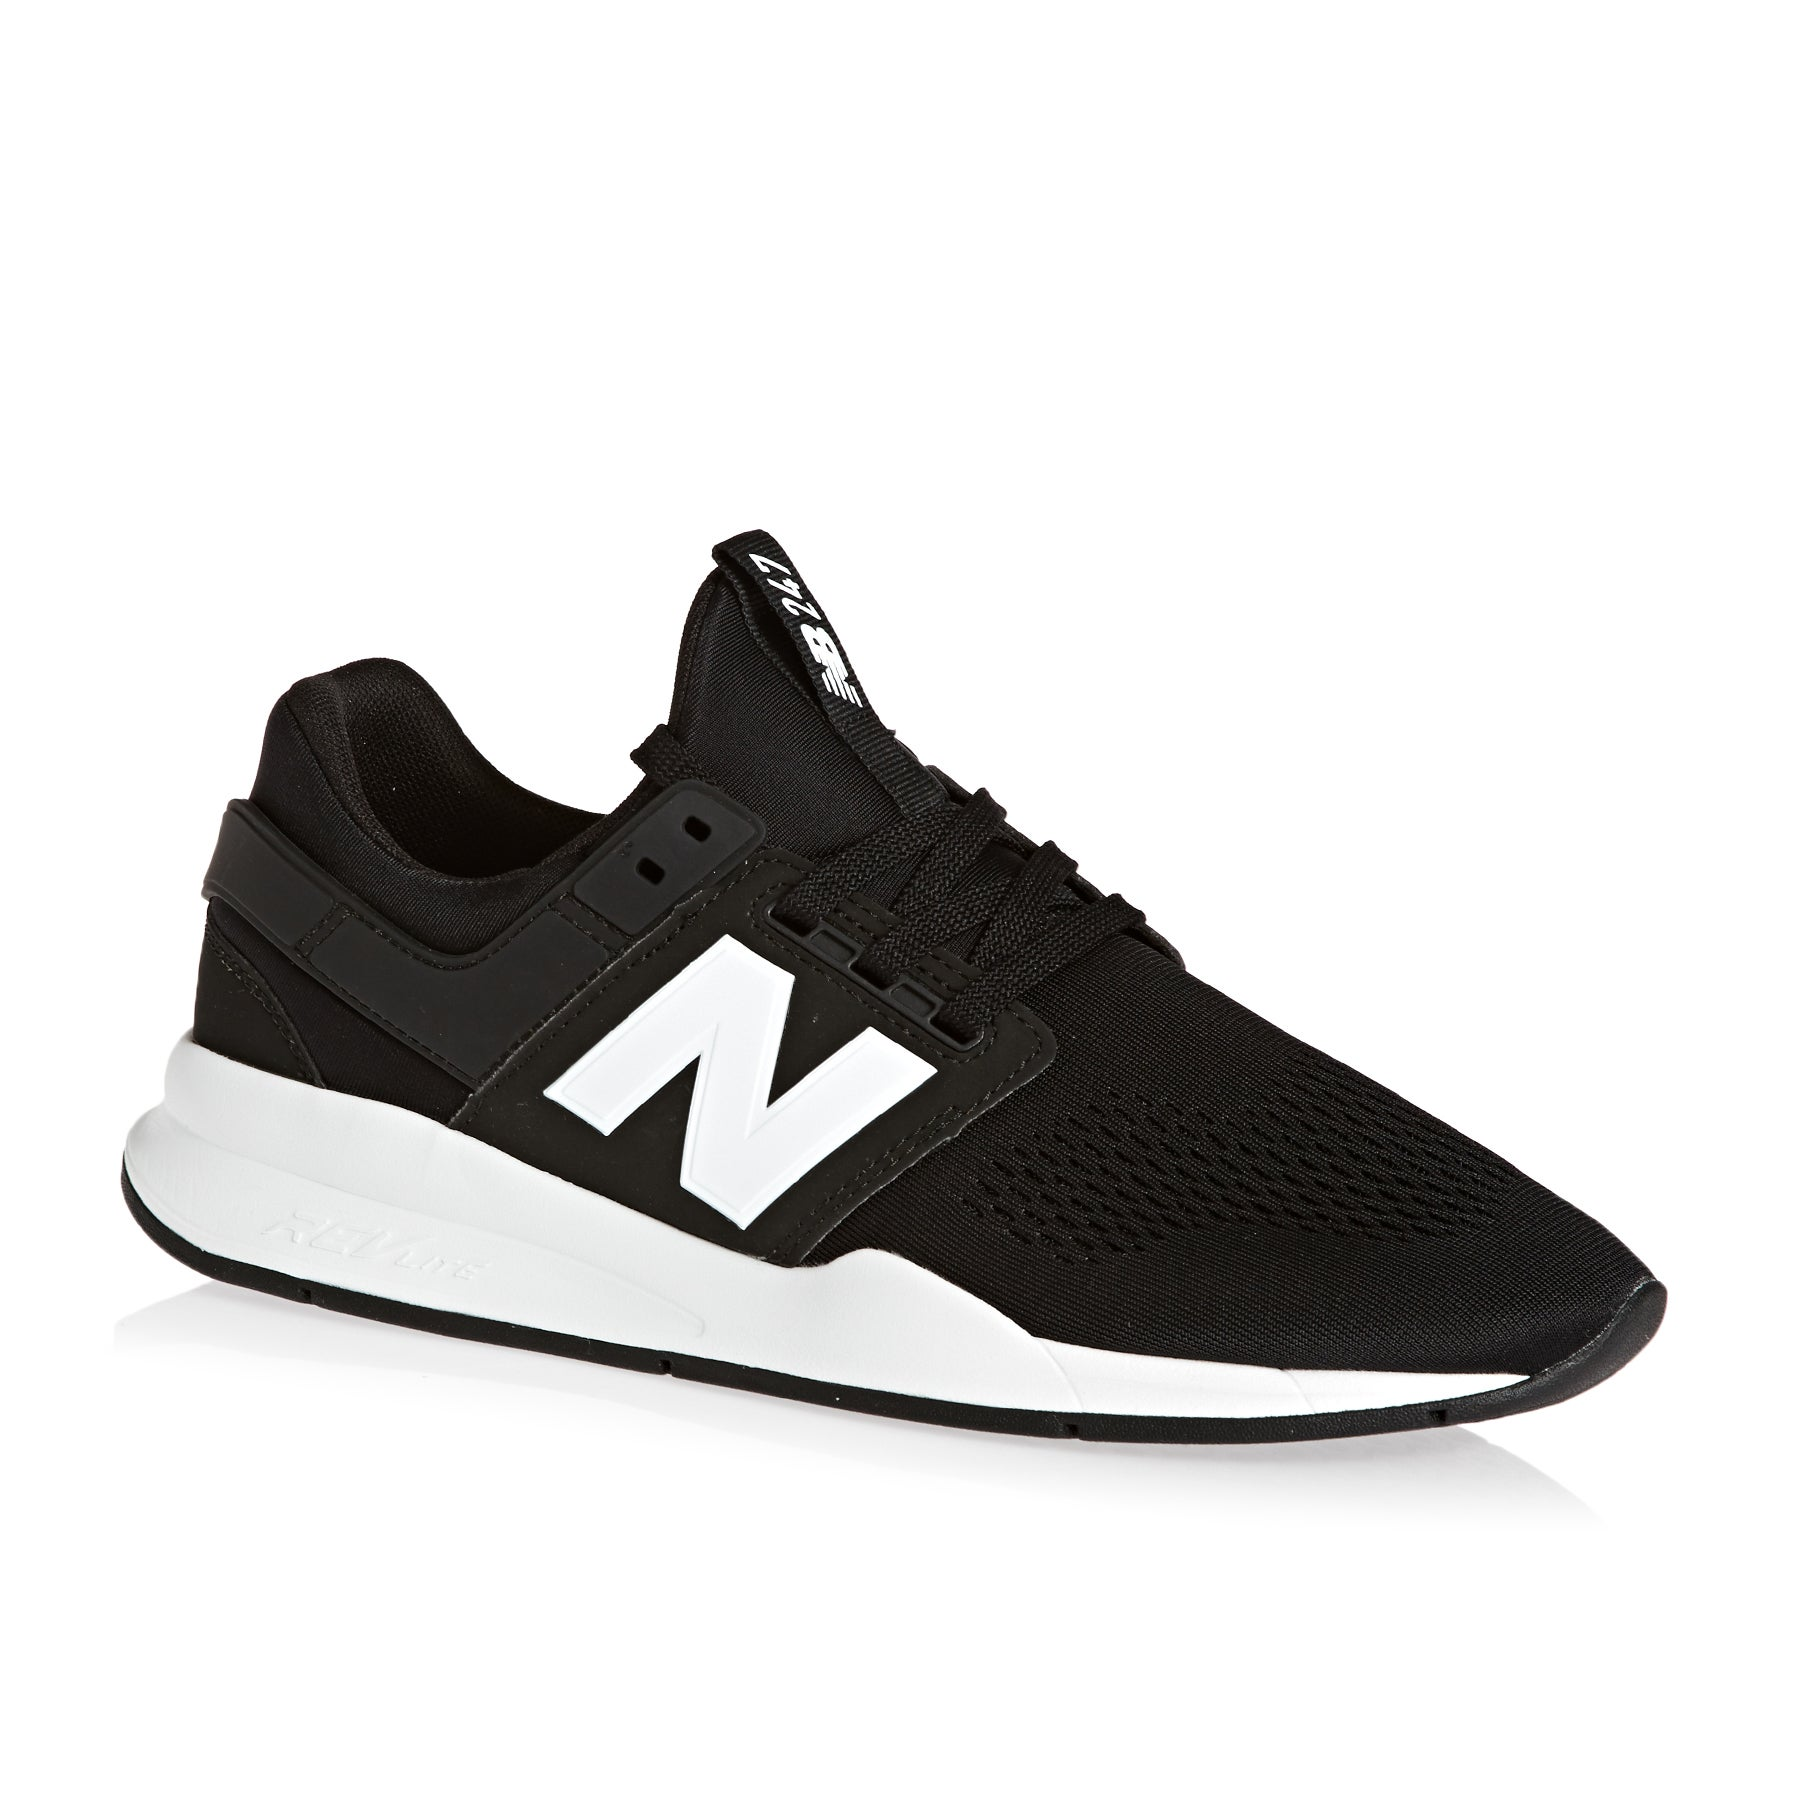 De Balance New Disponible Ms247 Chaussures Running Sur Surfdome wqSBaR